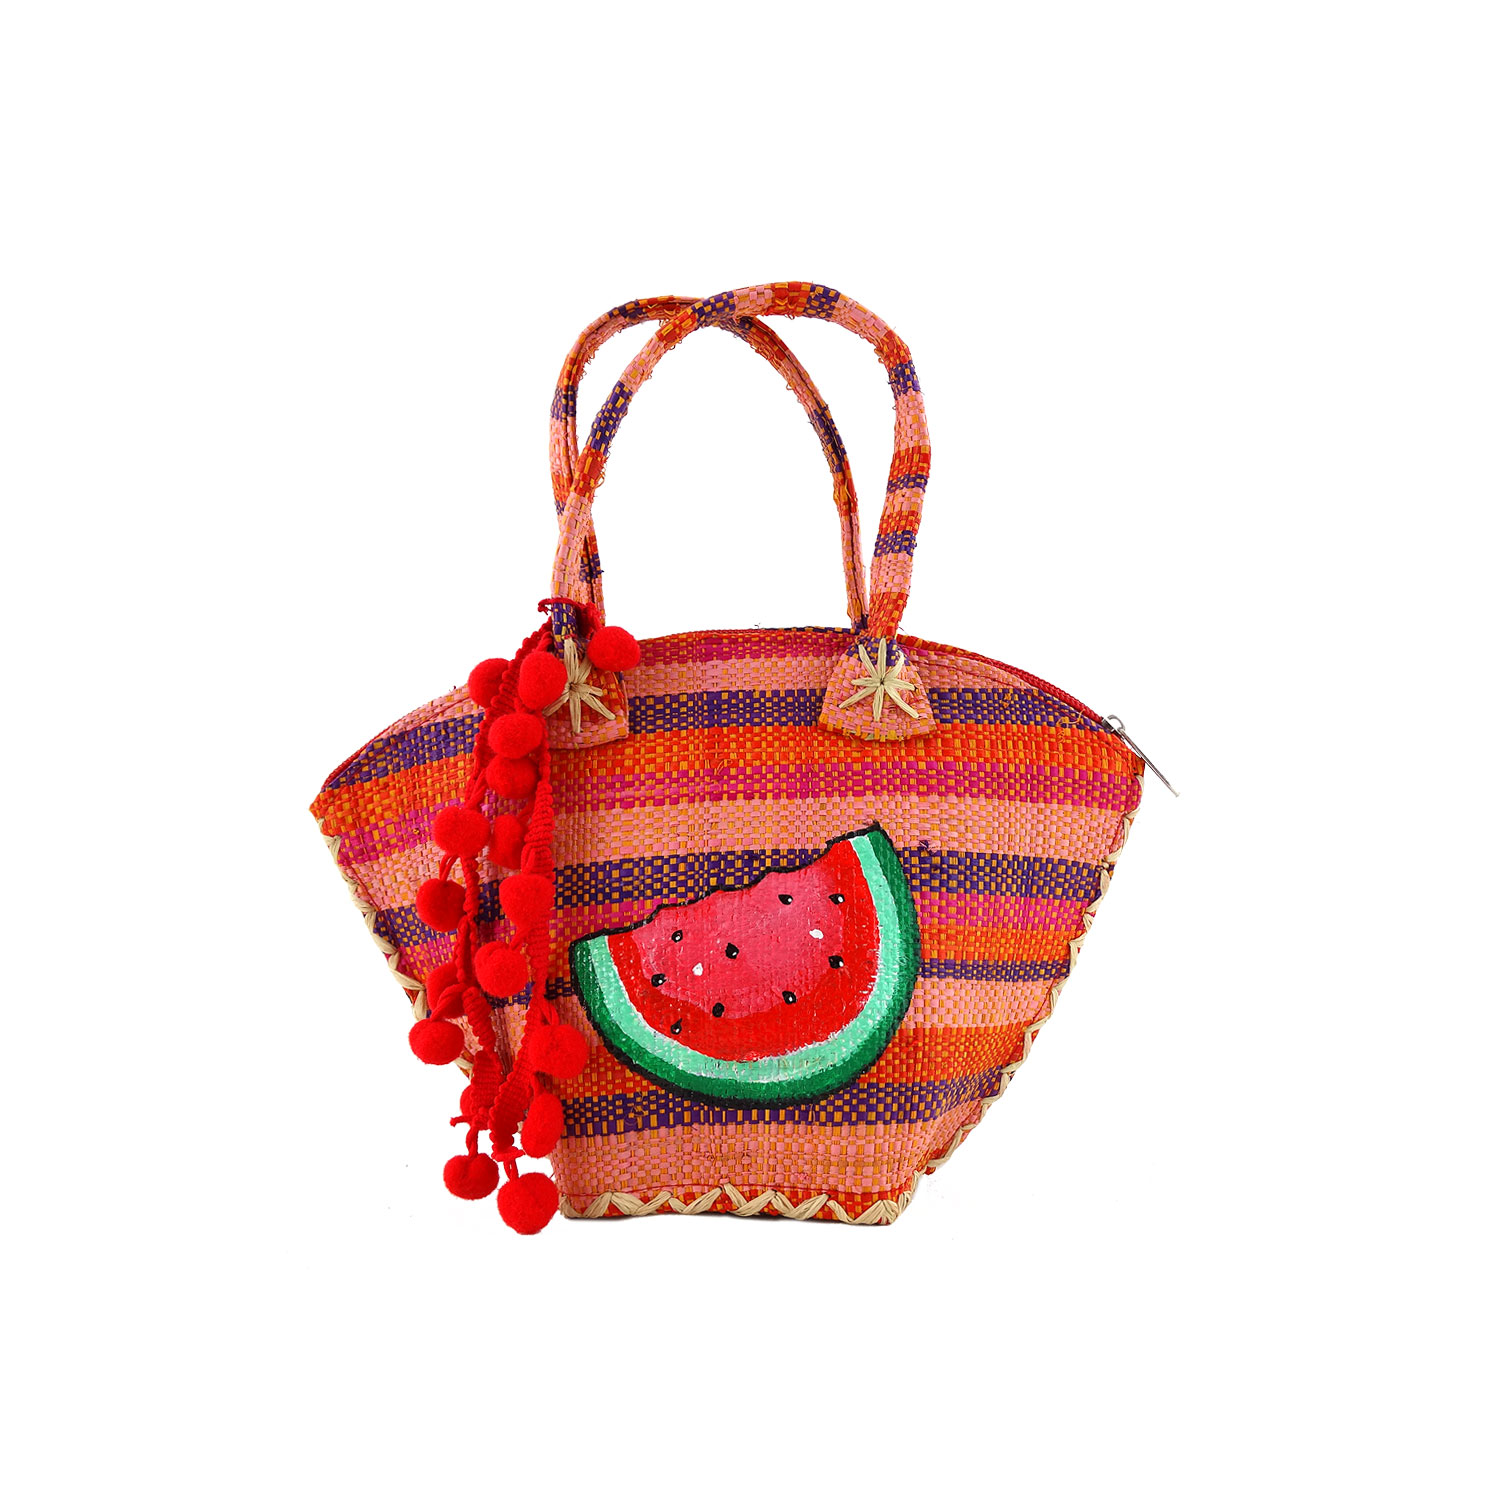 Hand-painted straw handbag - Watermelon